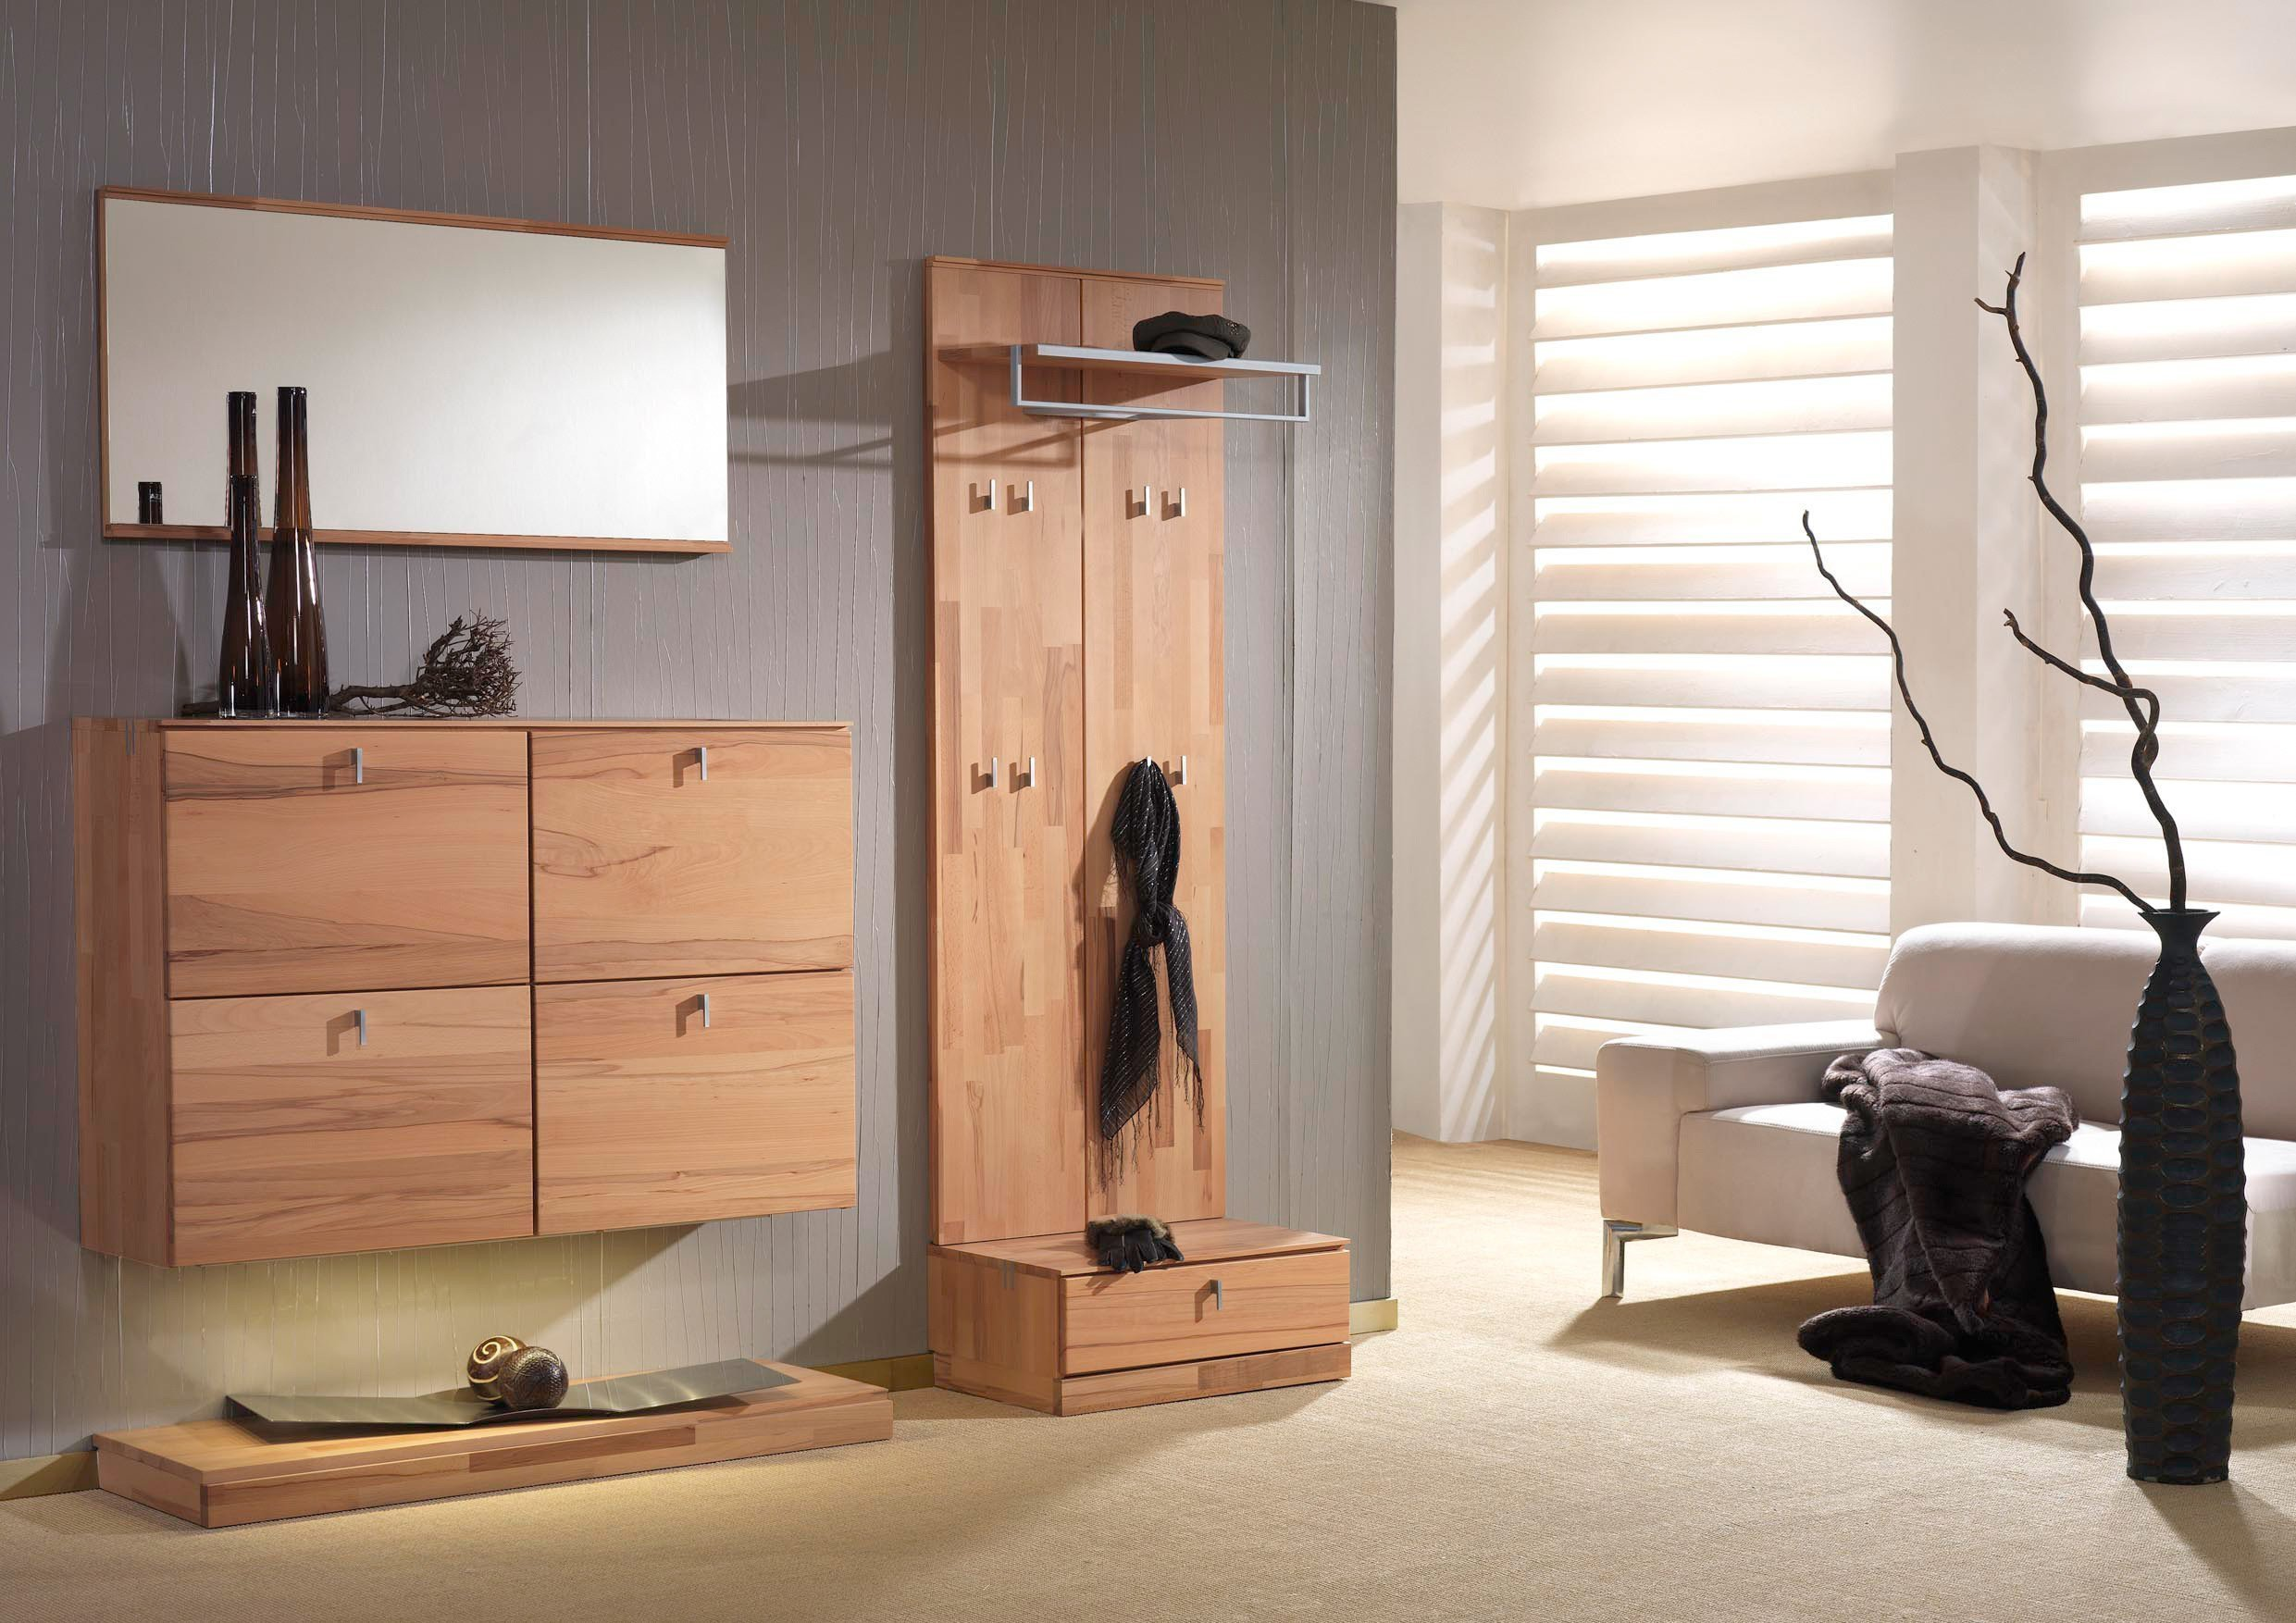 bienenm hle vado garderobe set 08 kernbuche m bel letz ihr online shop. Black Bedroom Furniture Sets. Home Design Ideas